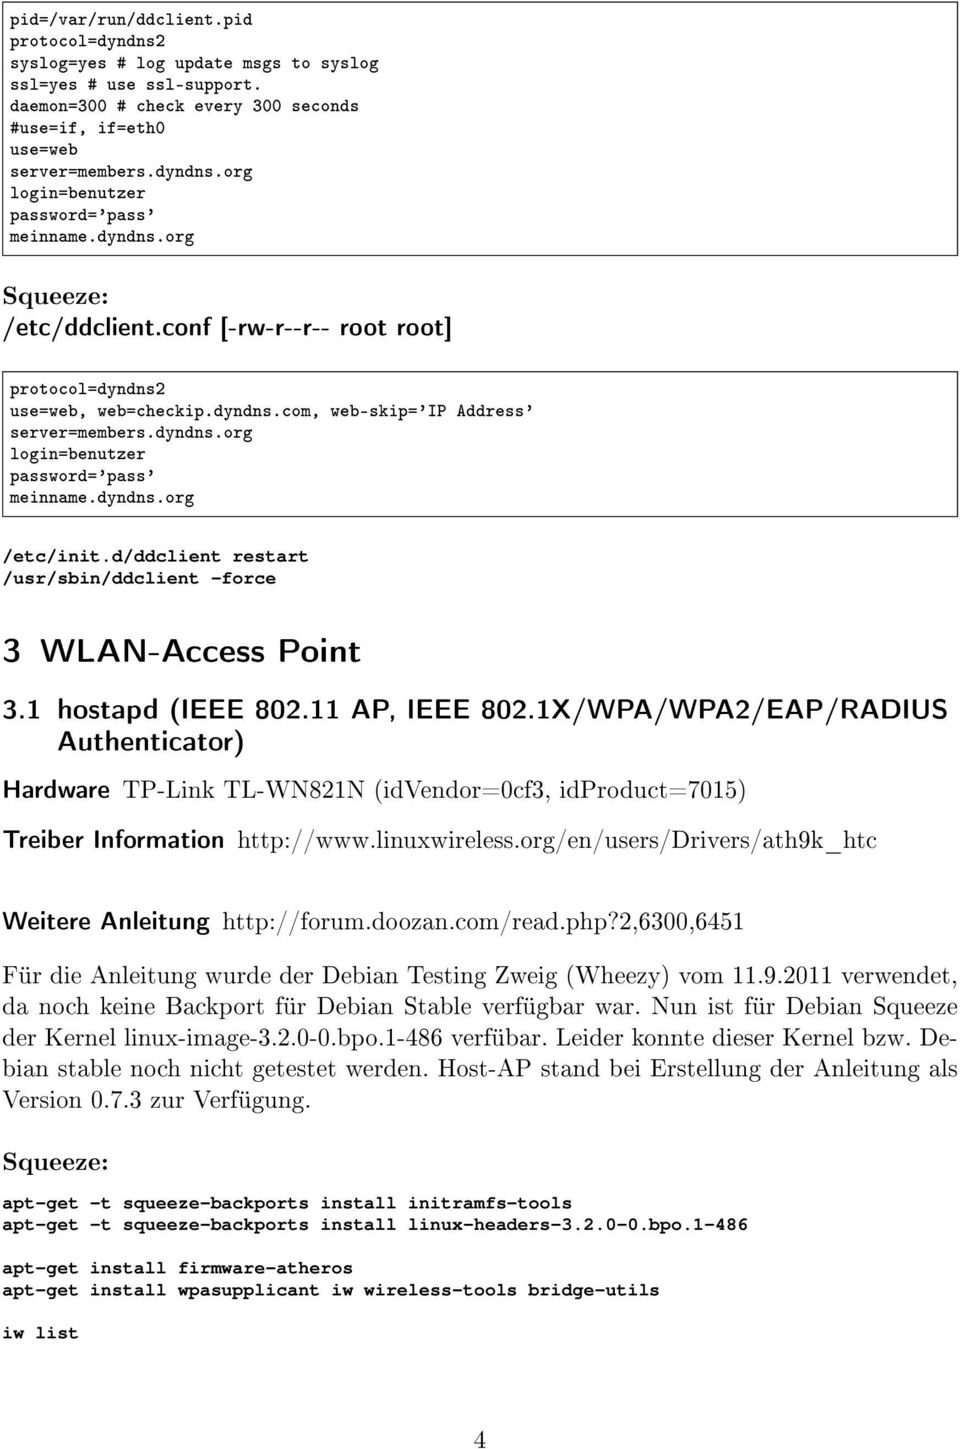 dyndns.org /etc/init.d/ddclient restart /usr/sbin/ddclient -force 3 WLAN-Access Point 3.1 hostapd (IEEE 802.11 AP, IEEE 802.